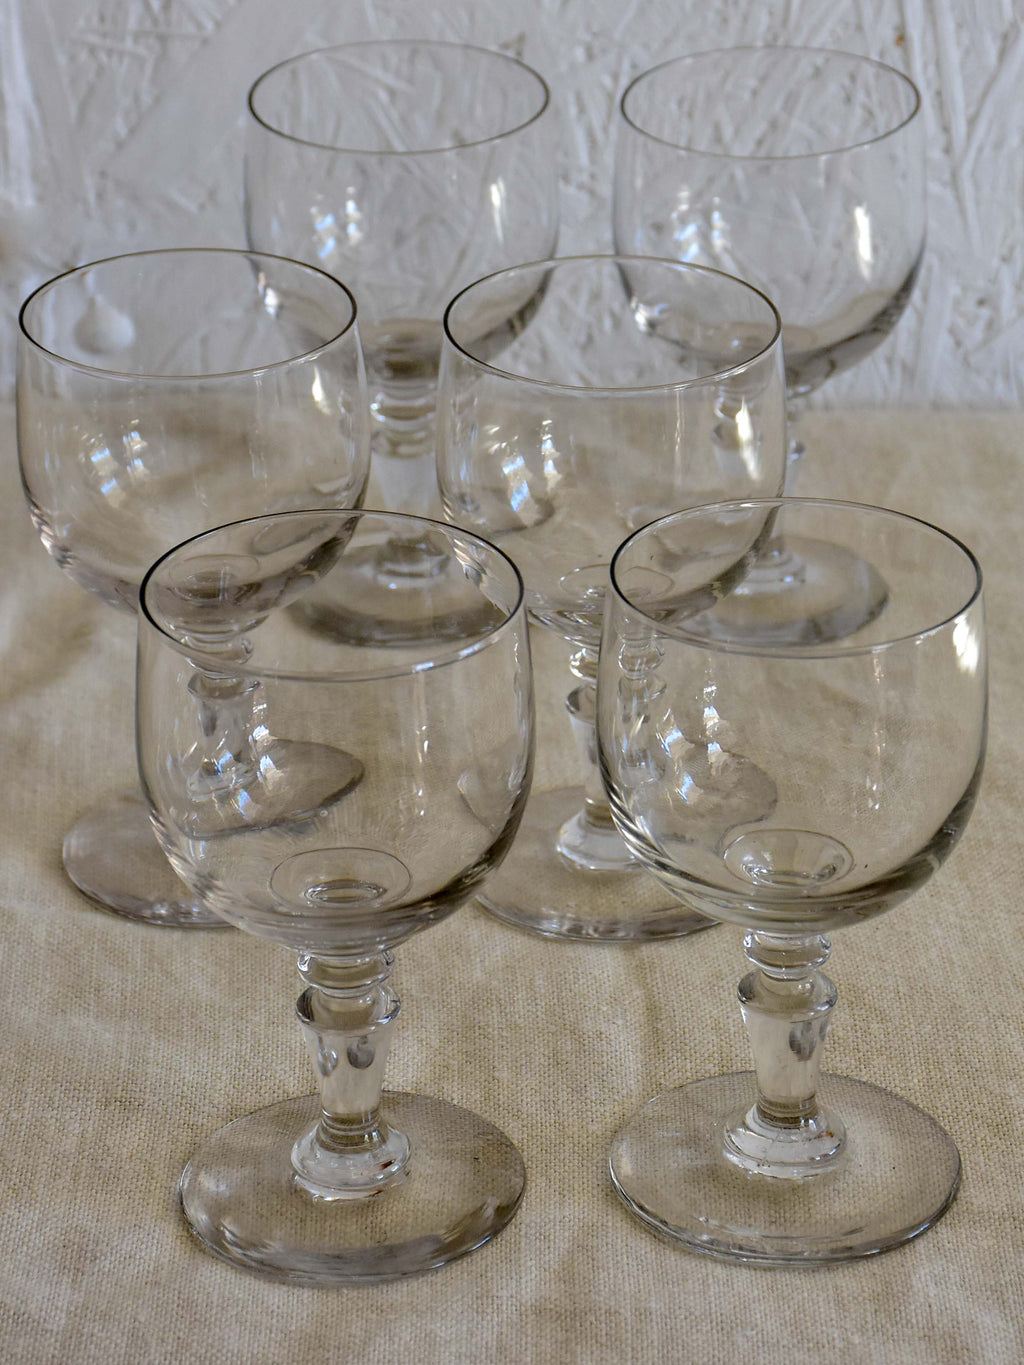 Six antique French wine glasses